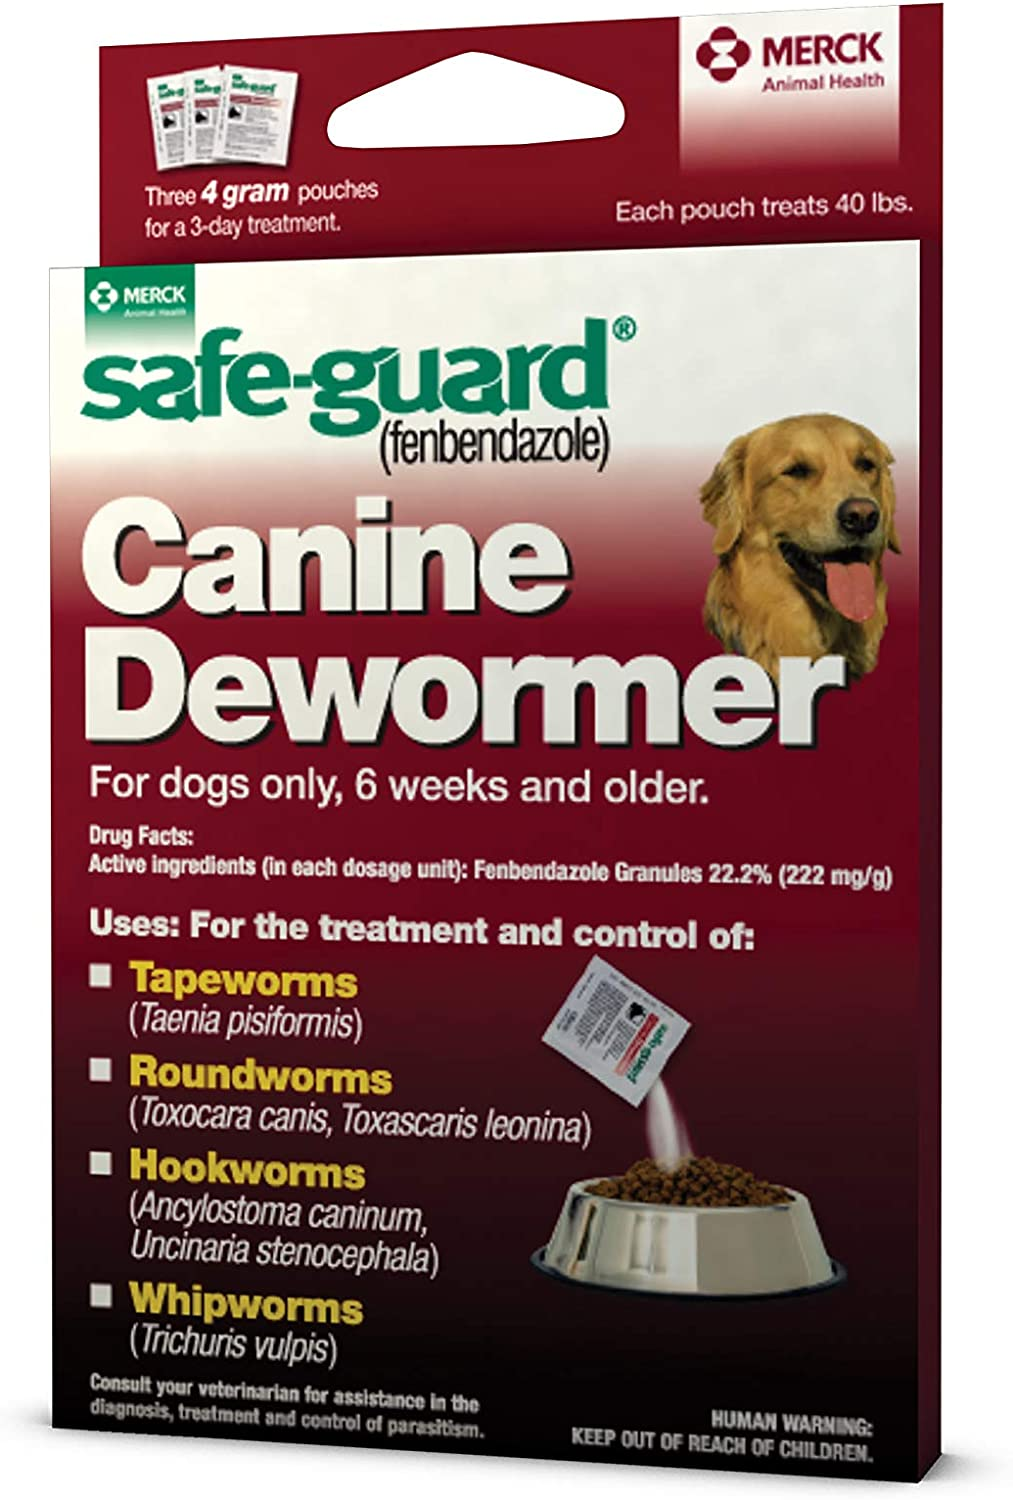 Safe-Guard fenbendazole Canine Dewormer for Max 84% OFF 4gm Dogs Phoenix Mall pouch e